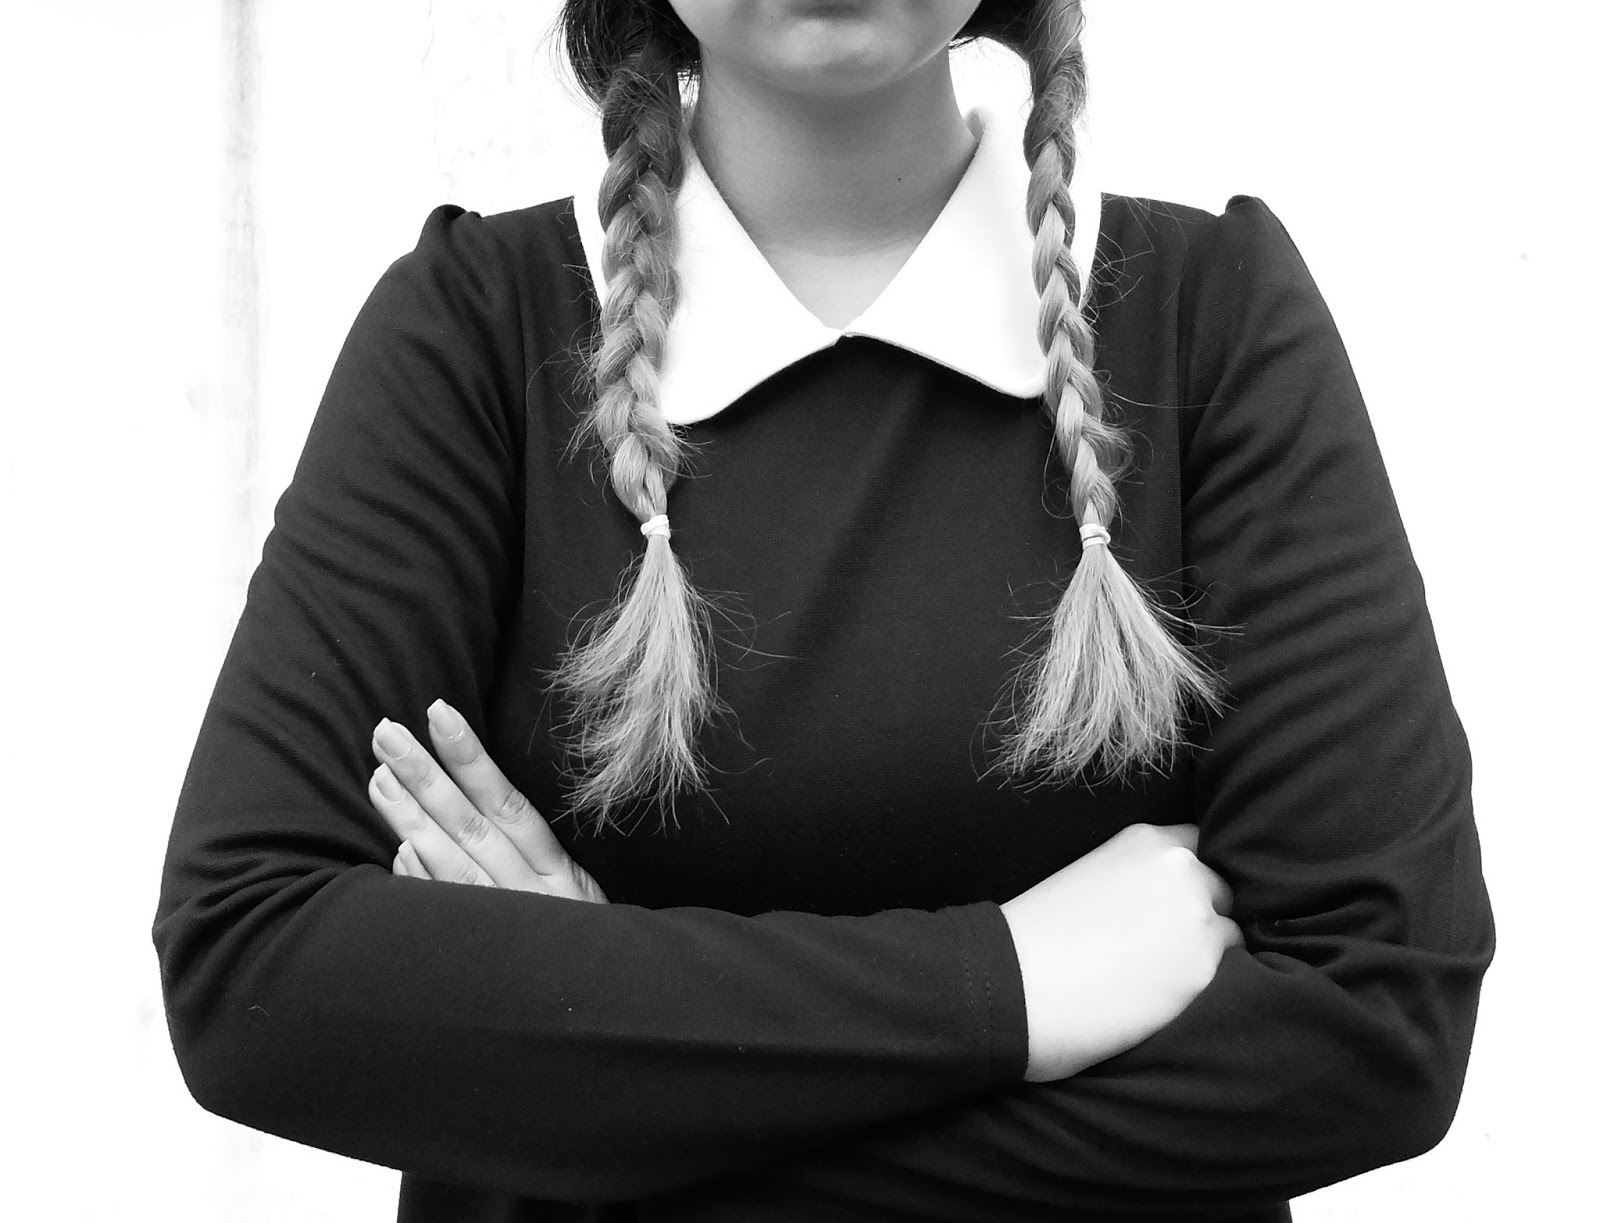 braids, black and white, wednesday addams